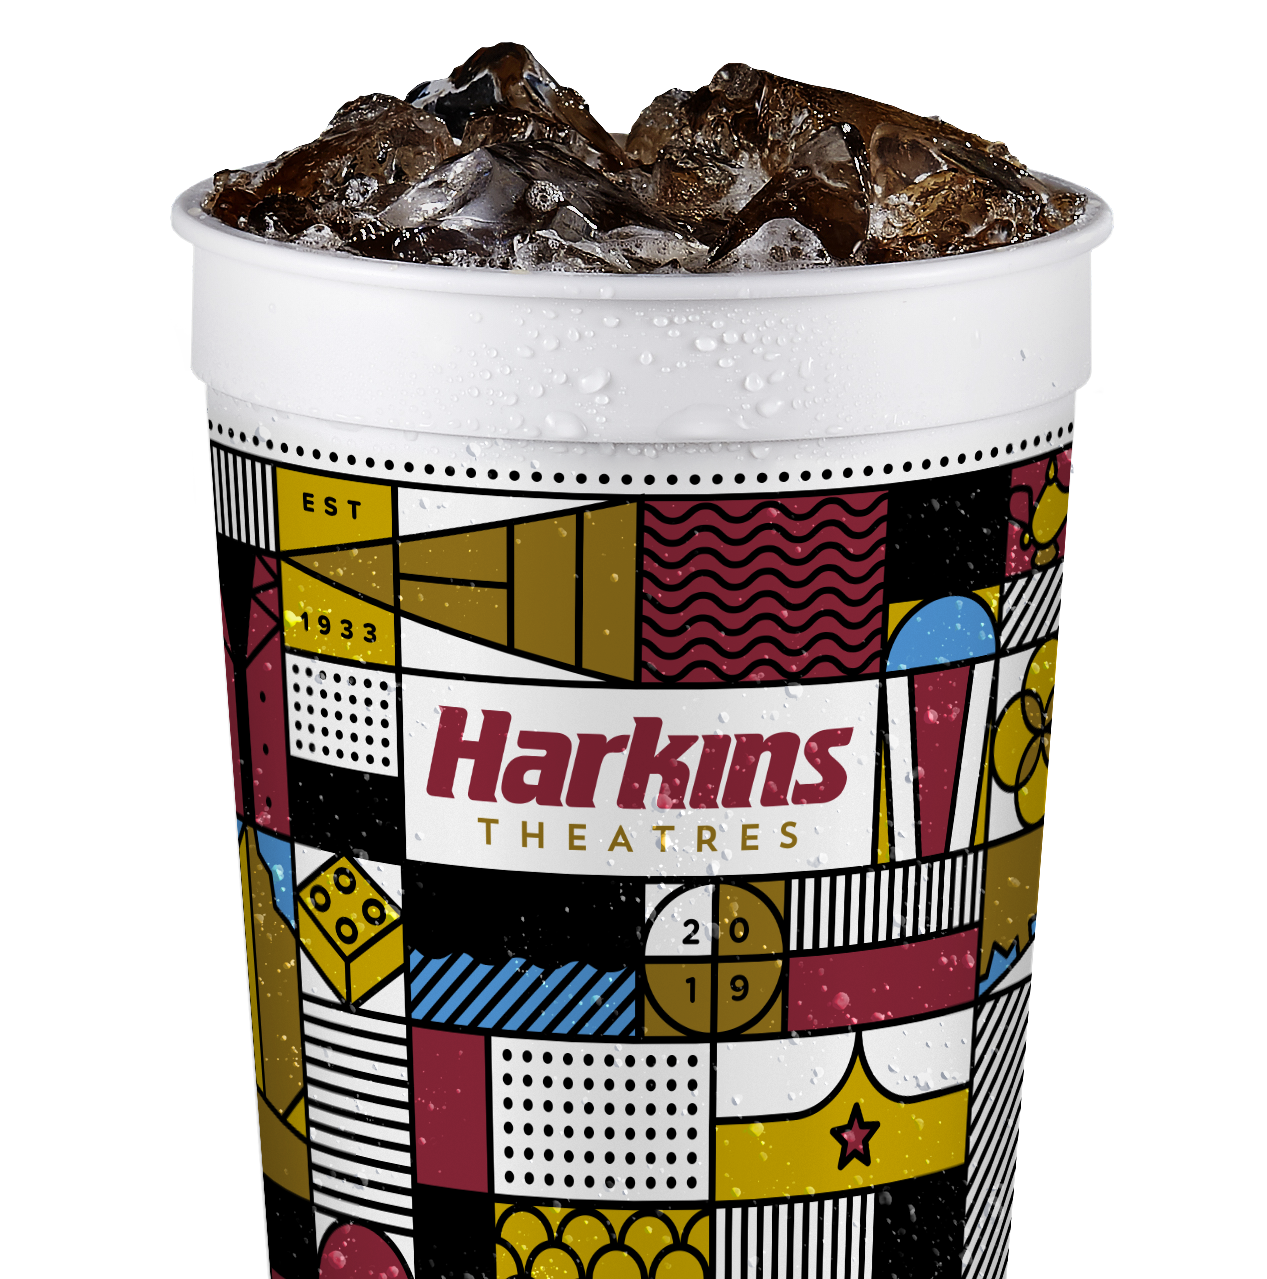 Attention, moviegoers: The 2019 Harkins loyalty cup is now available